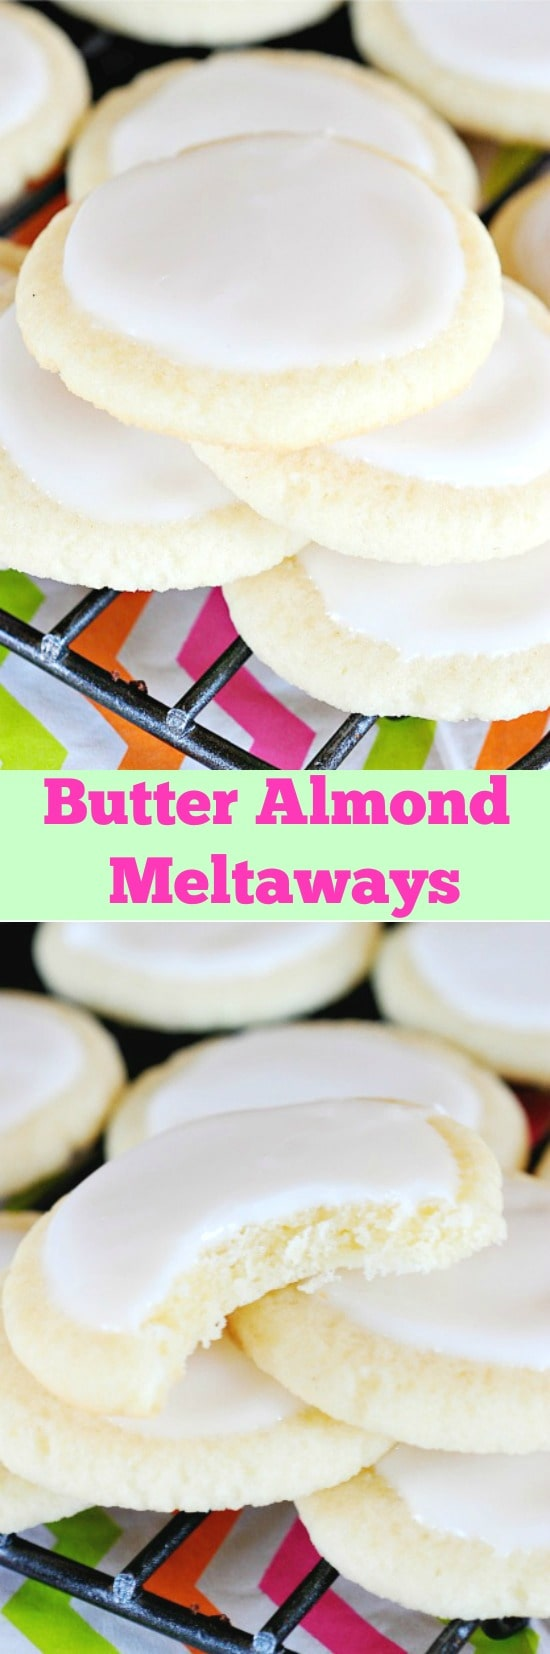 Butter Almond Meltaways are light, delicate, melt in your mouth cookies. The vanilla almond icing takes them up another notch! These are totally addicting!